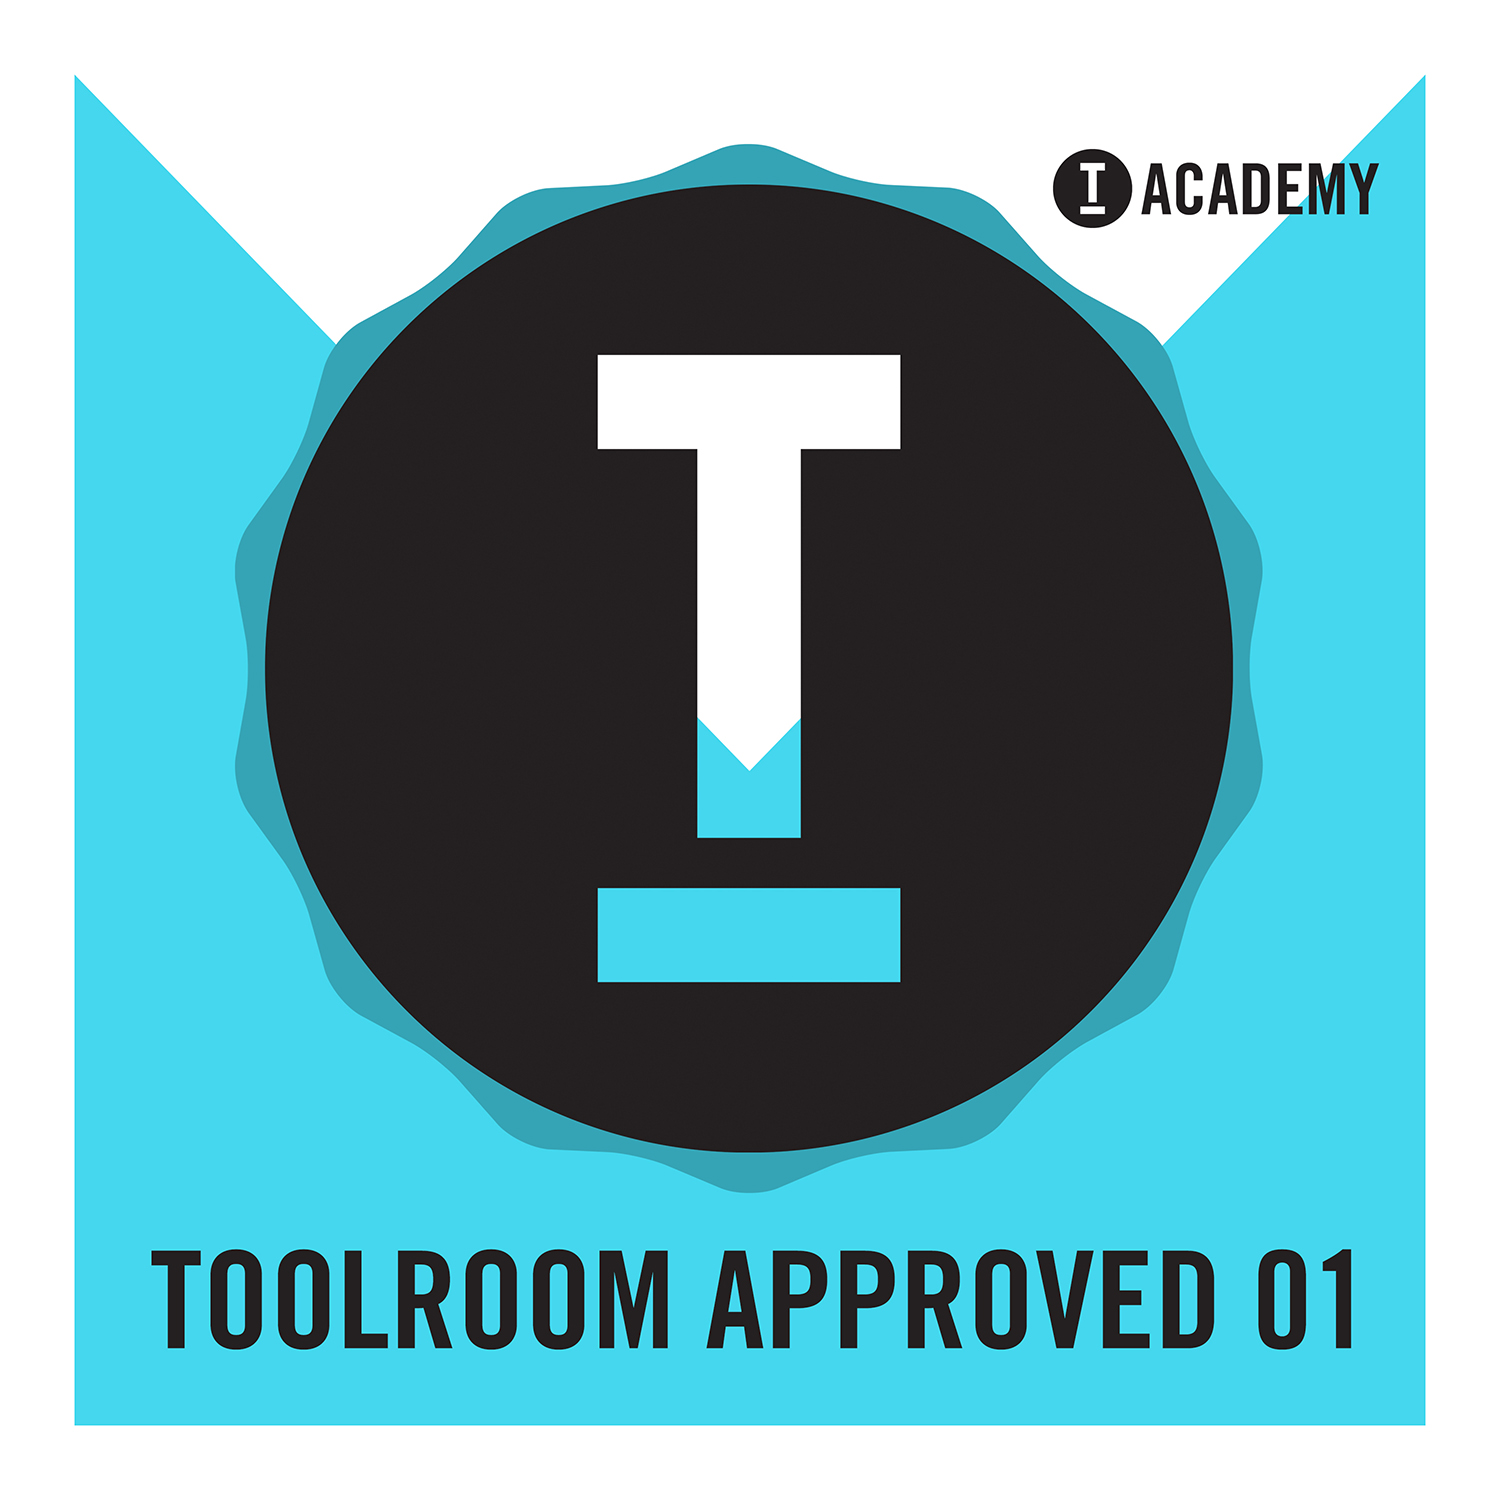 TOOLROOM ACADEMY Toolroom Approved 01